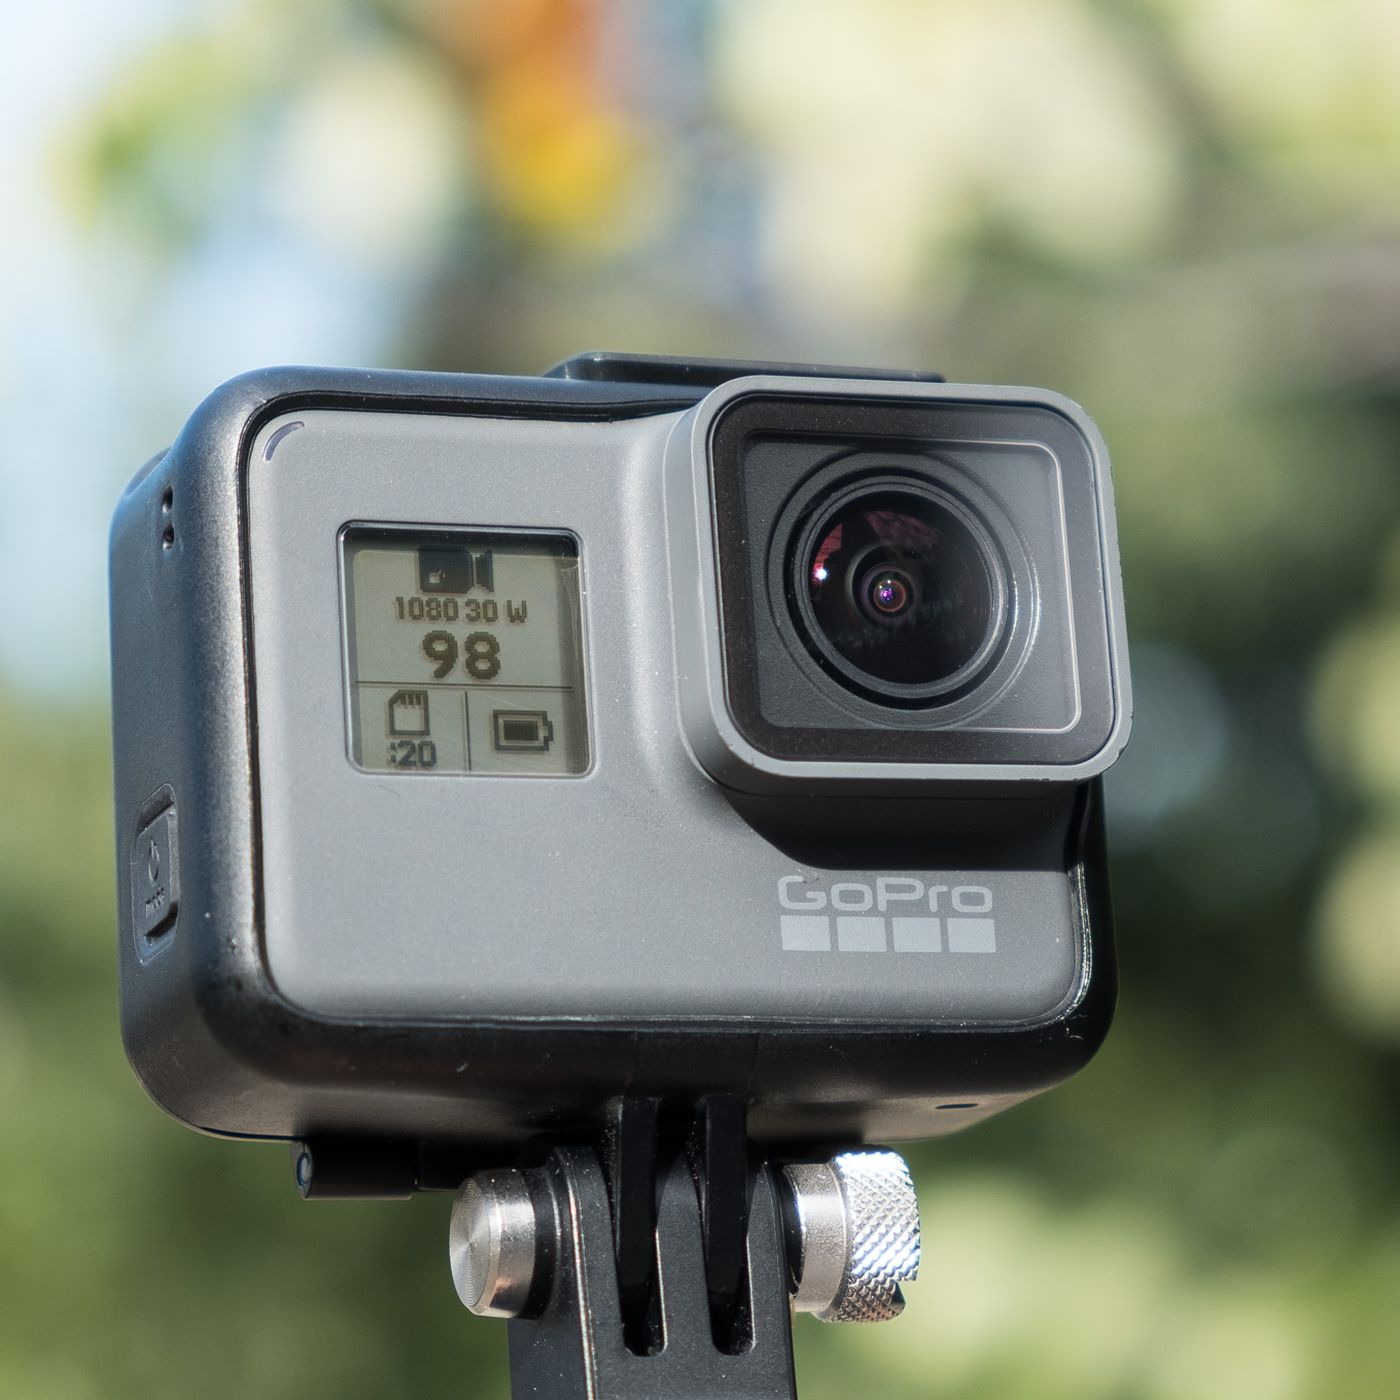 GoPro's holiday season was even worse than the company predicted